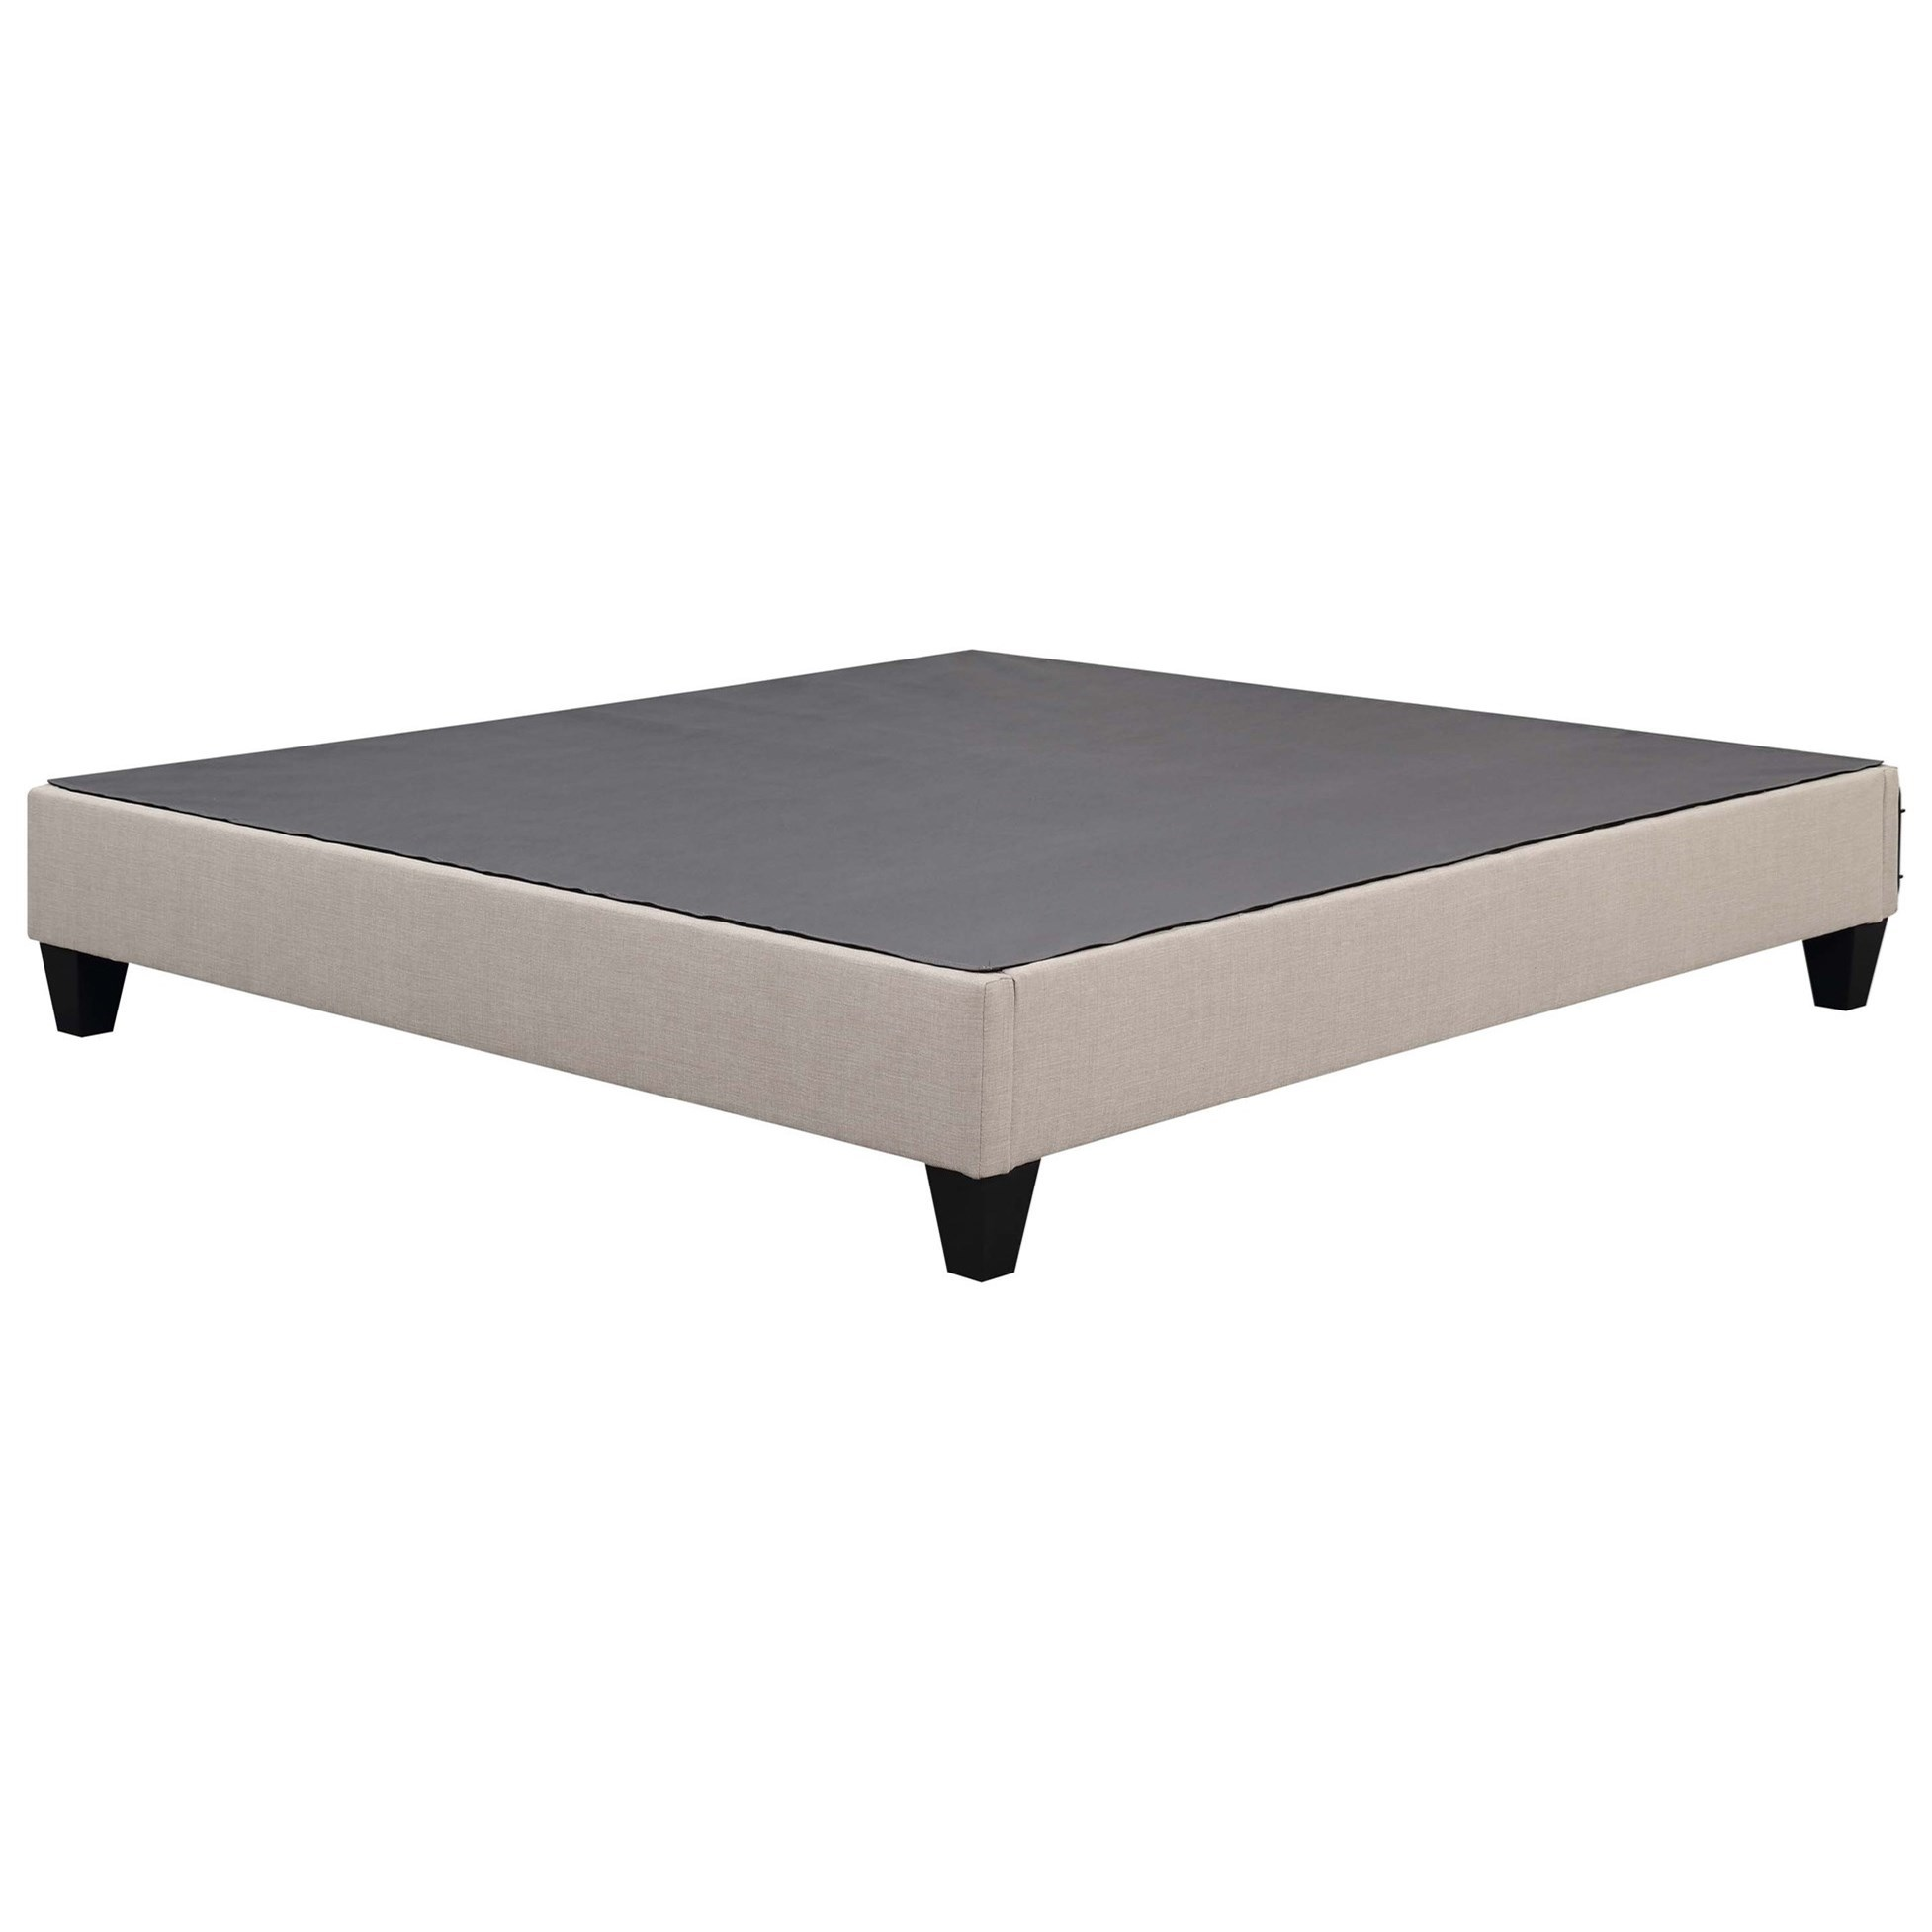 Abby King Platform Bed by Elements International at Goffena Furniture & Mattress Center